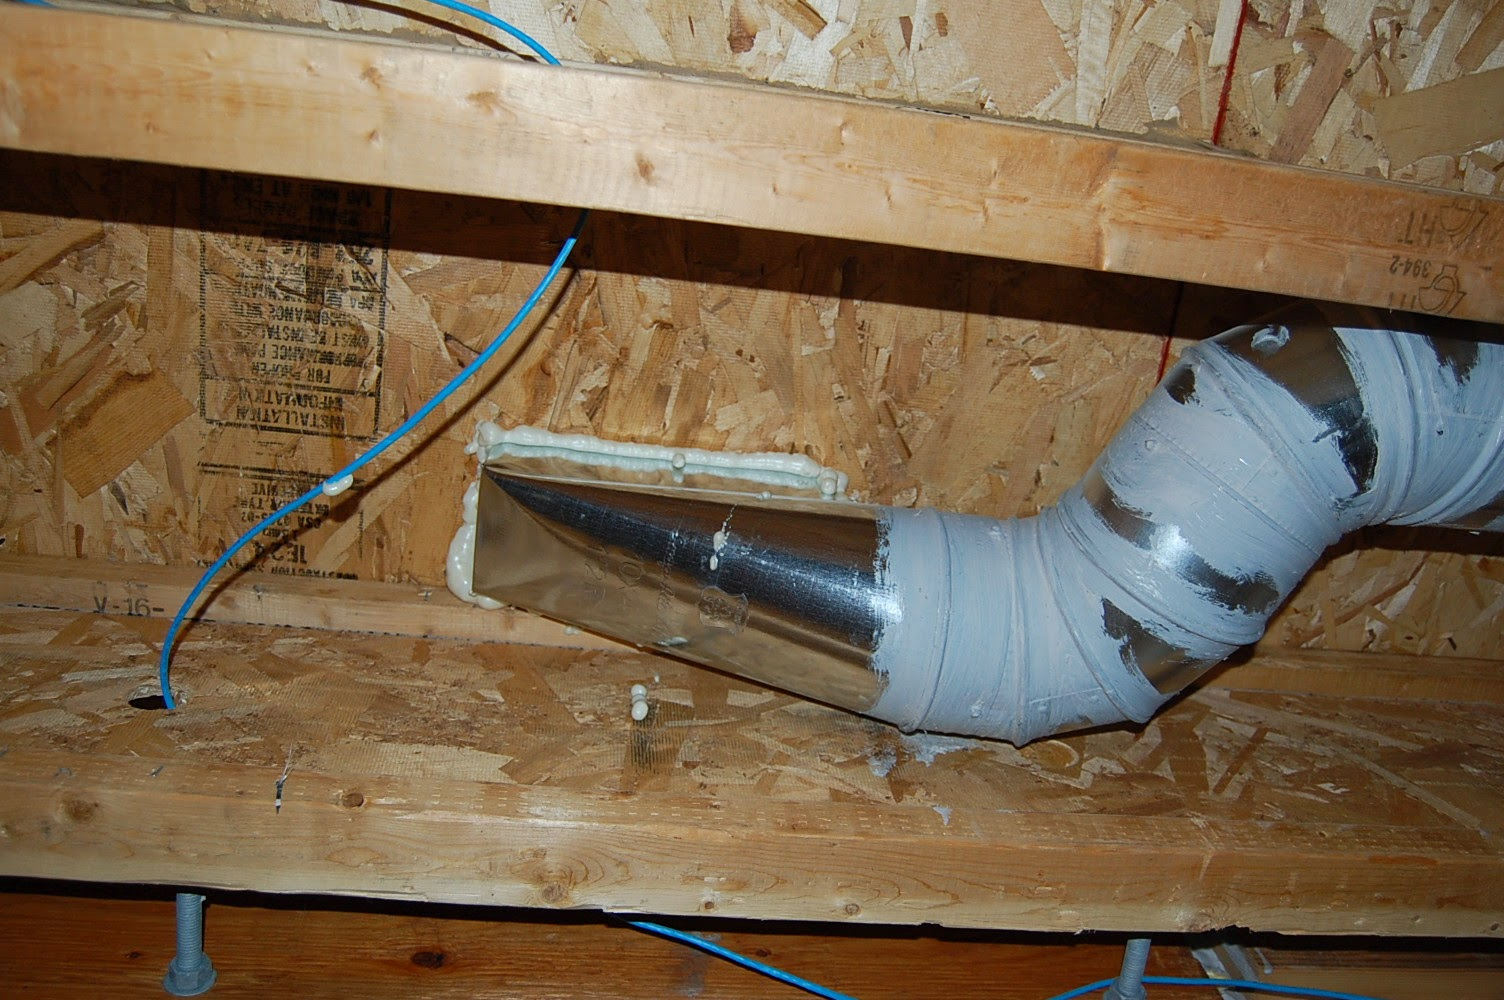 #664523 New Lizer Homestead: Air And Duct Sealing Along With  Best 6333 Sealing Air Ducts From The Inside photos with 1504x1000 px on helpvideos.info - Air Conditioners, Air Coolers and more